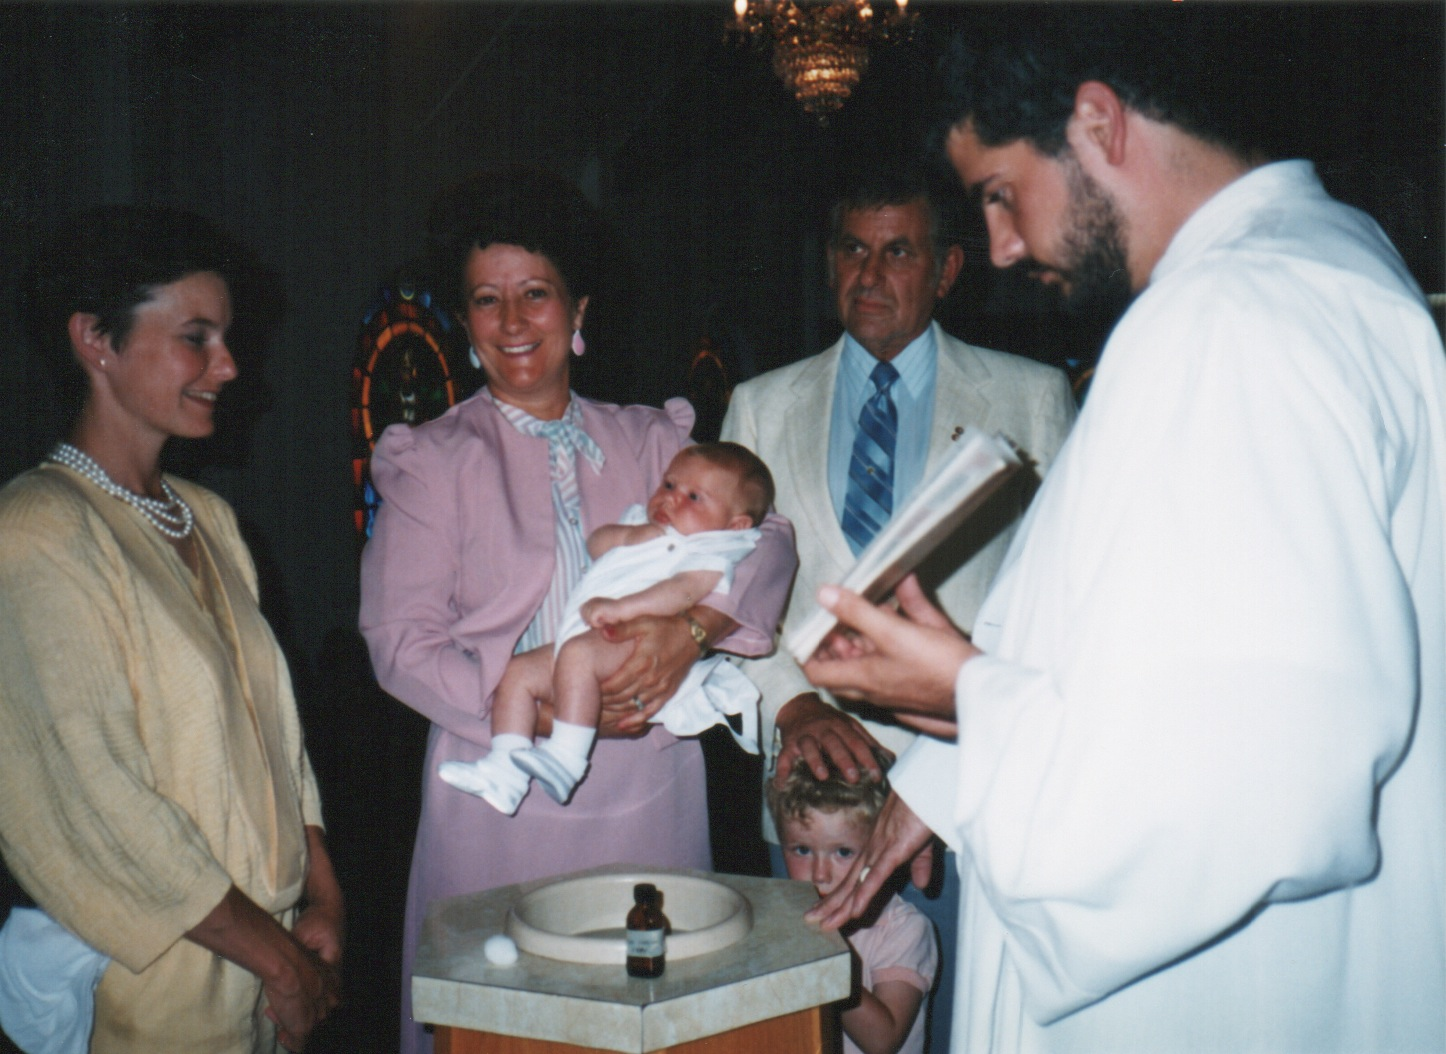 My brother Alex being baptized while my oldest brother Dillon looks cute and my mom (yellow) looks perfect.